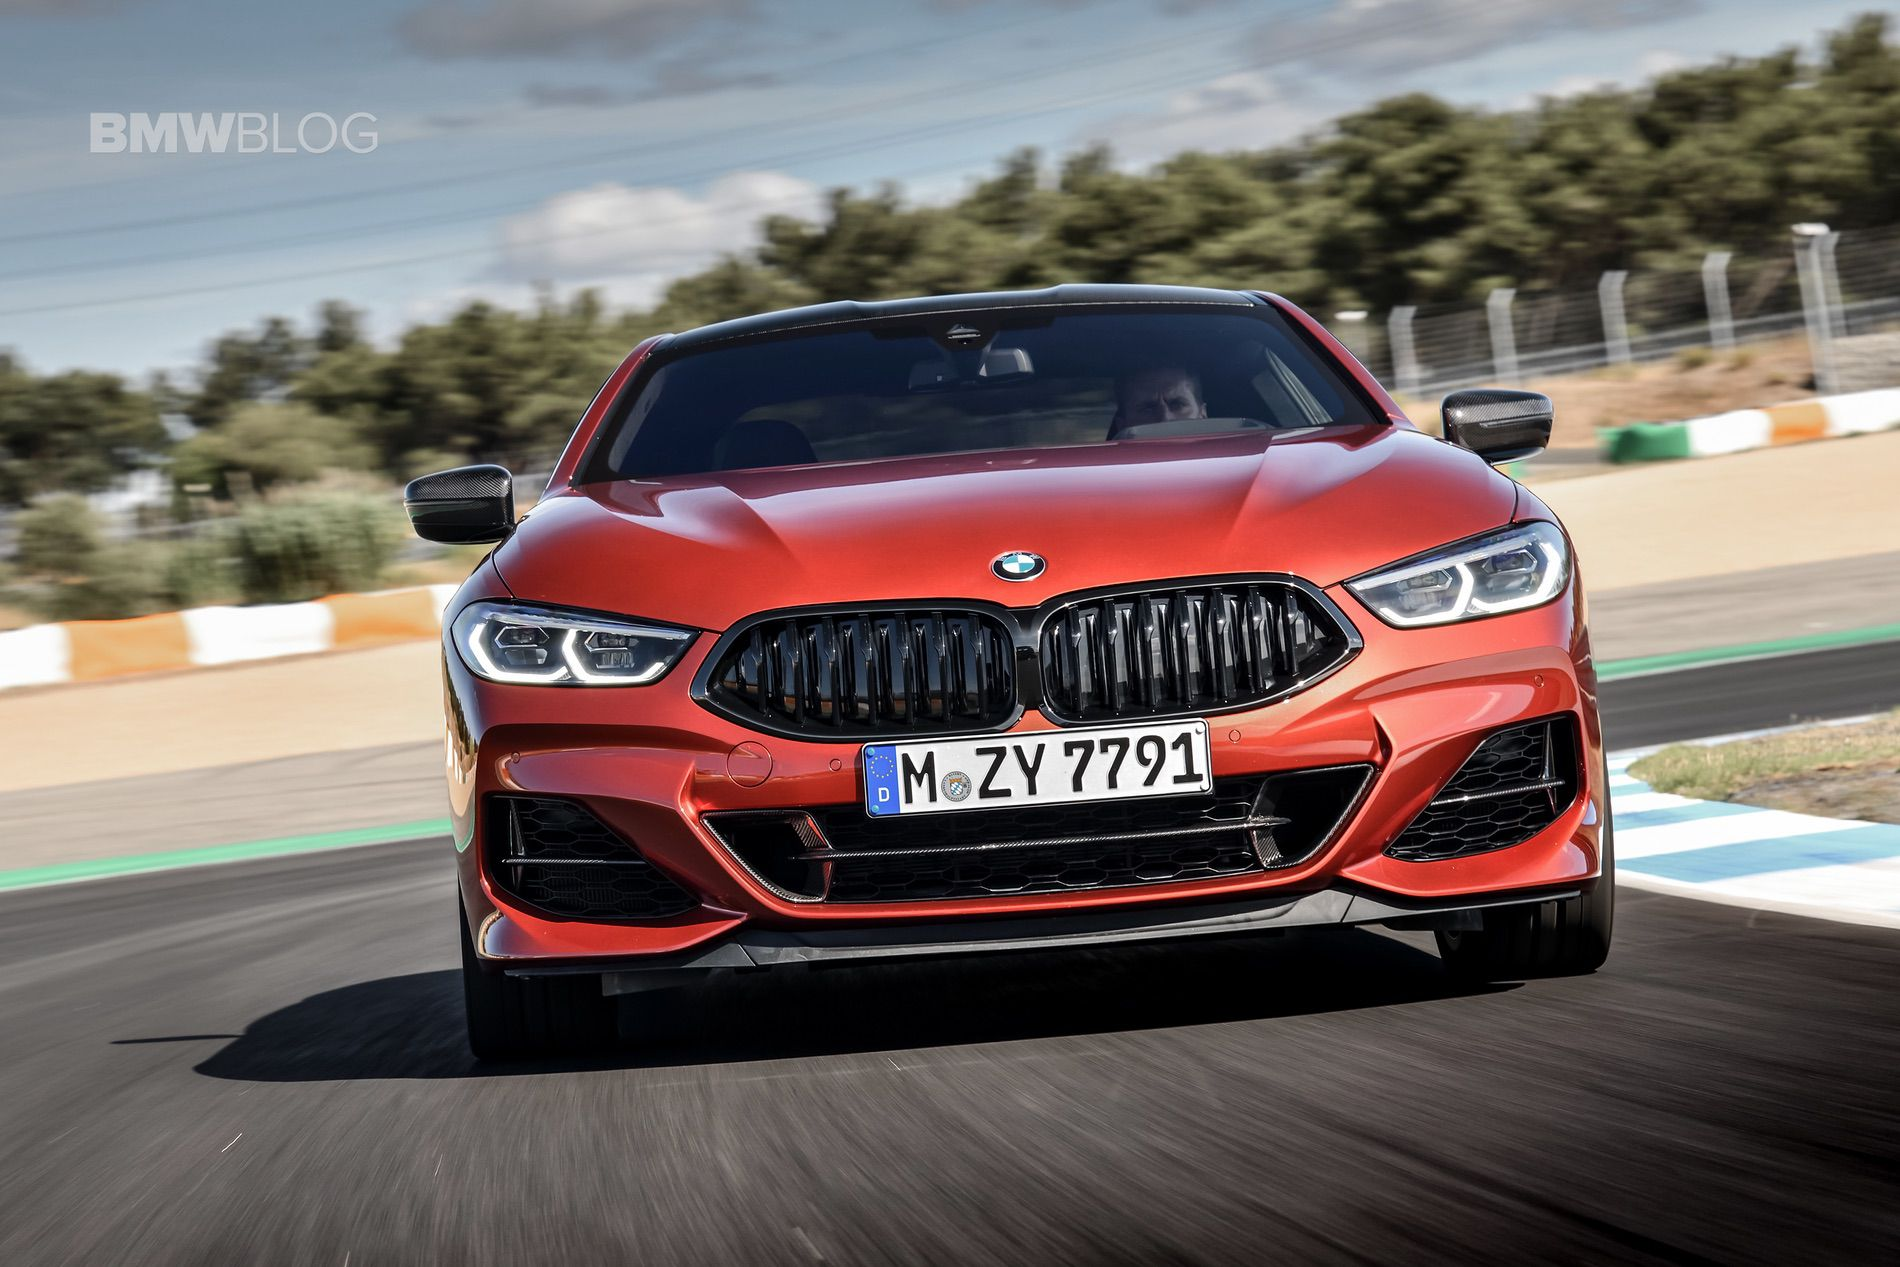 What are others saying about the BMW M850i?